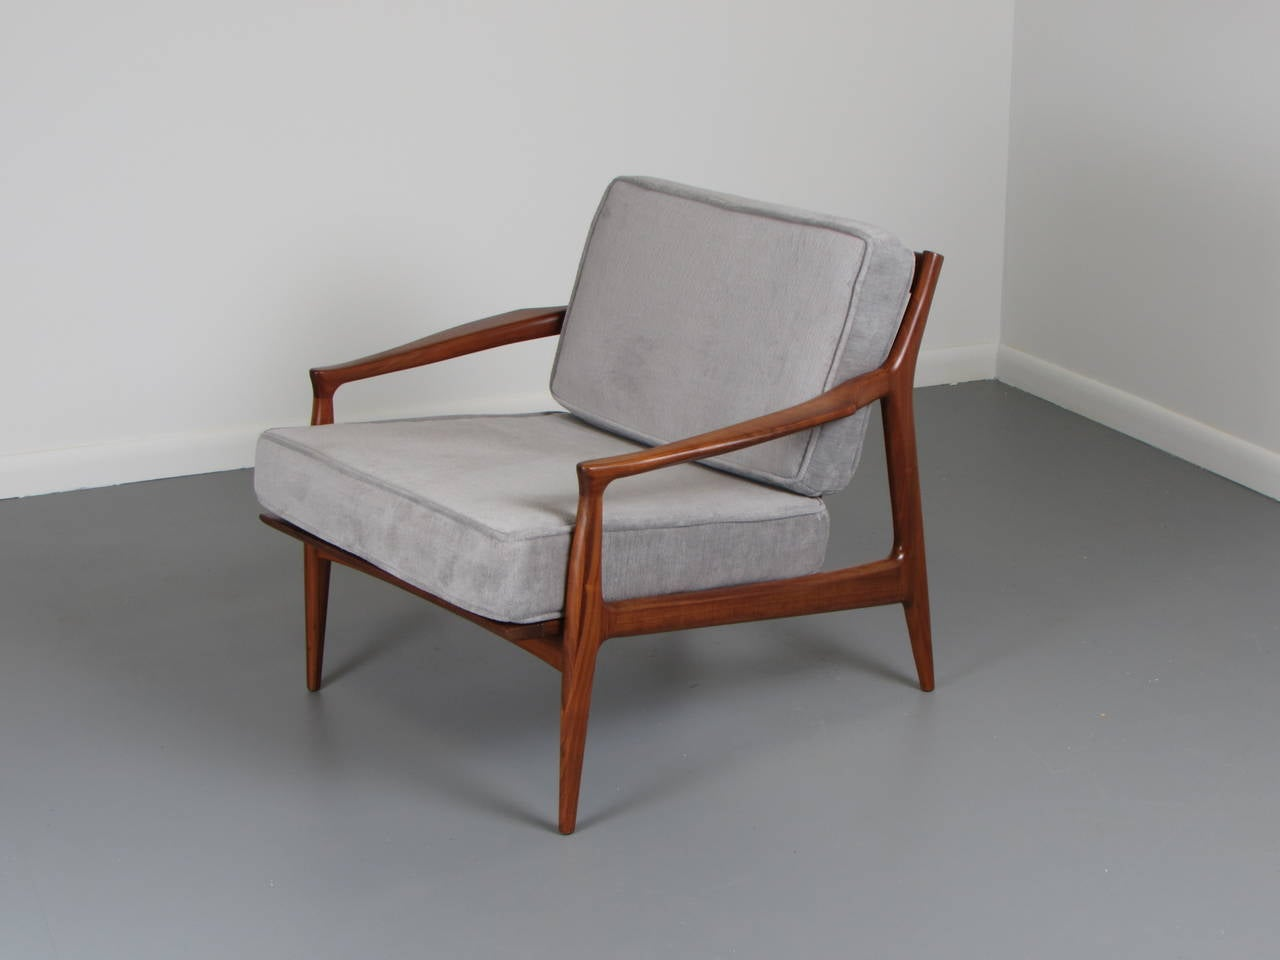 This sculptural pair of lounge chairs by ib kofod larsen is no longer - Sculptural Danish Modern Teak Lounge Chair By Ib Kofod Larsen 1960s 2